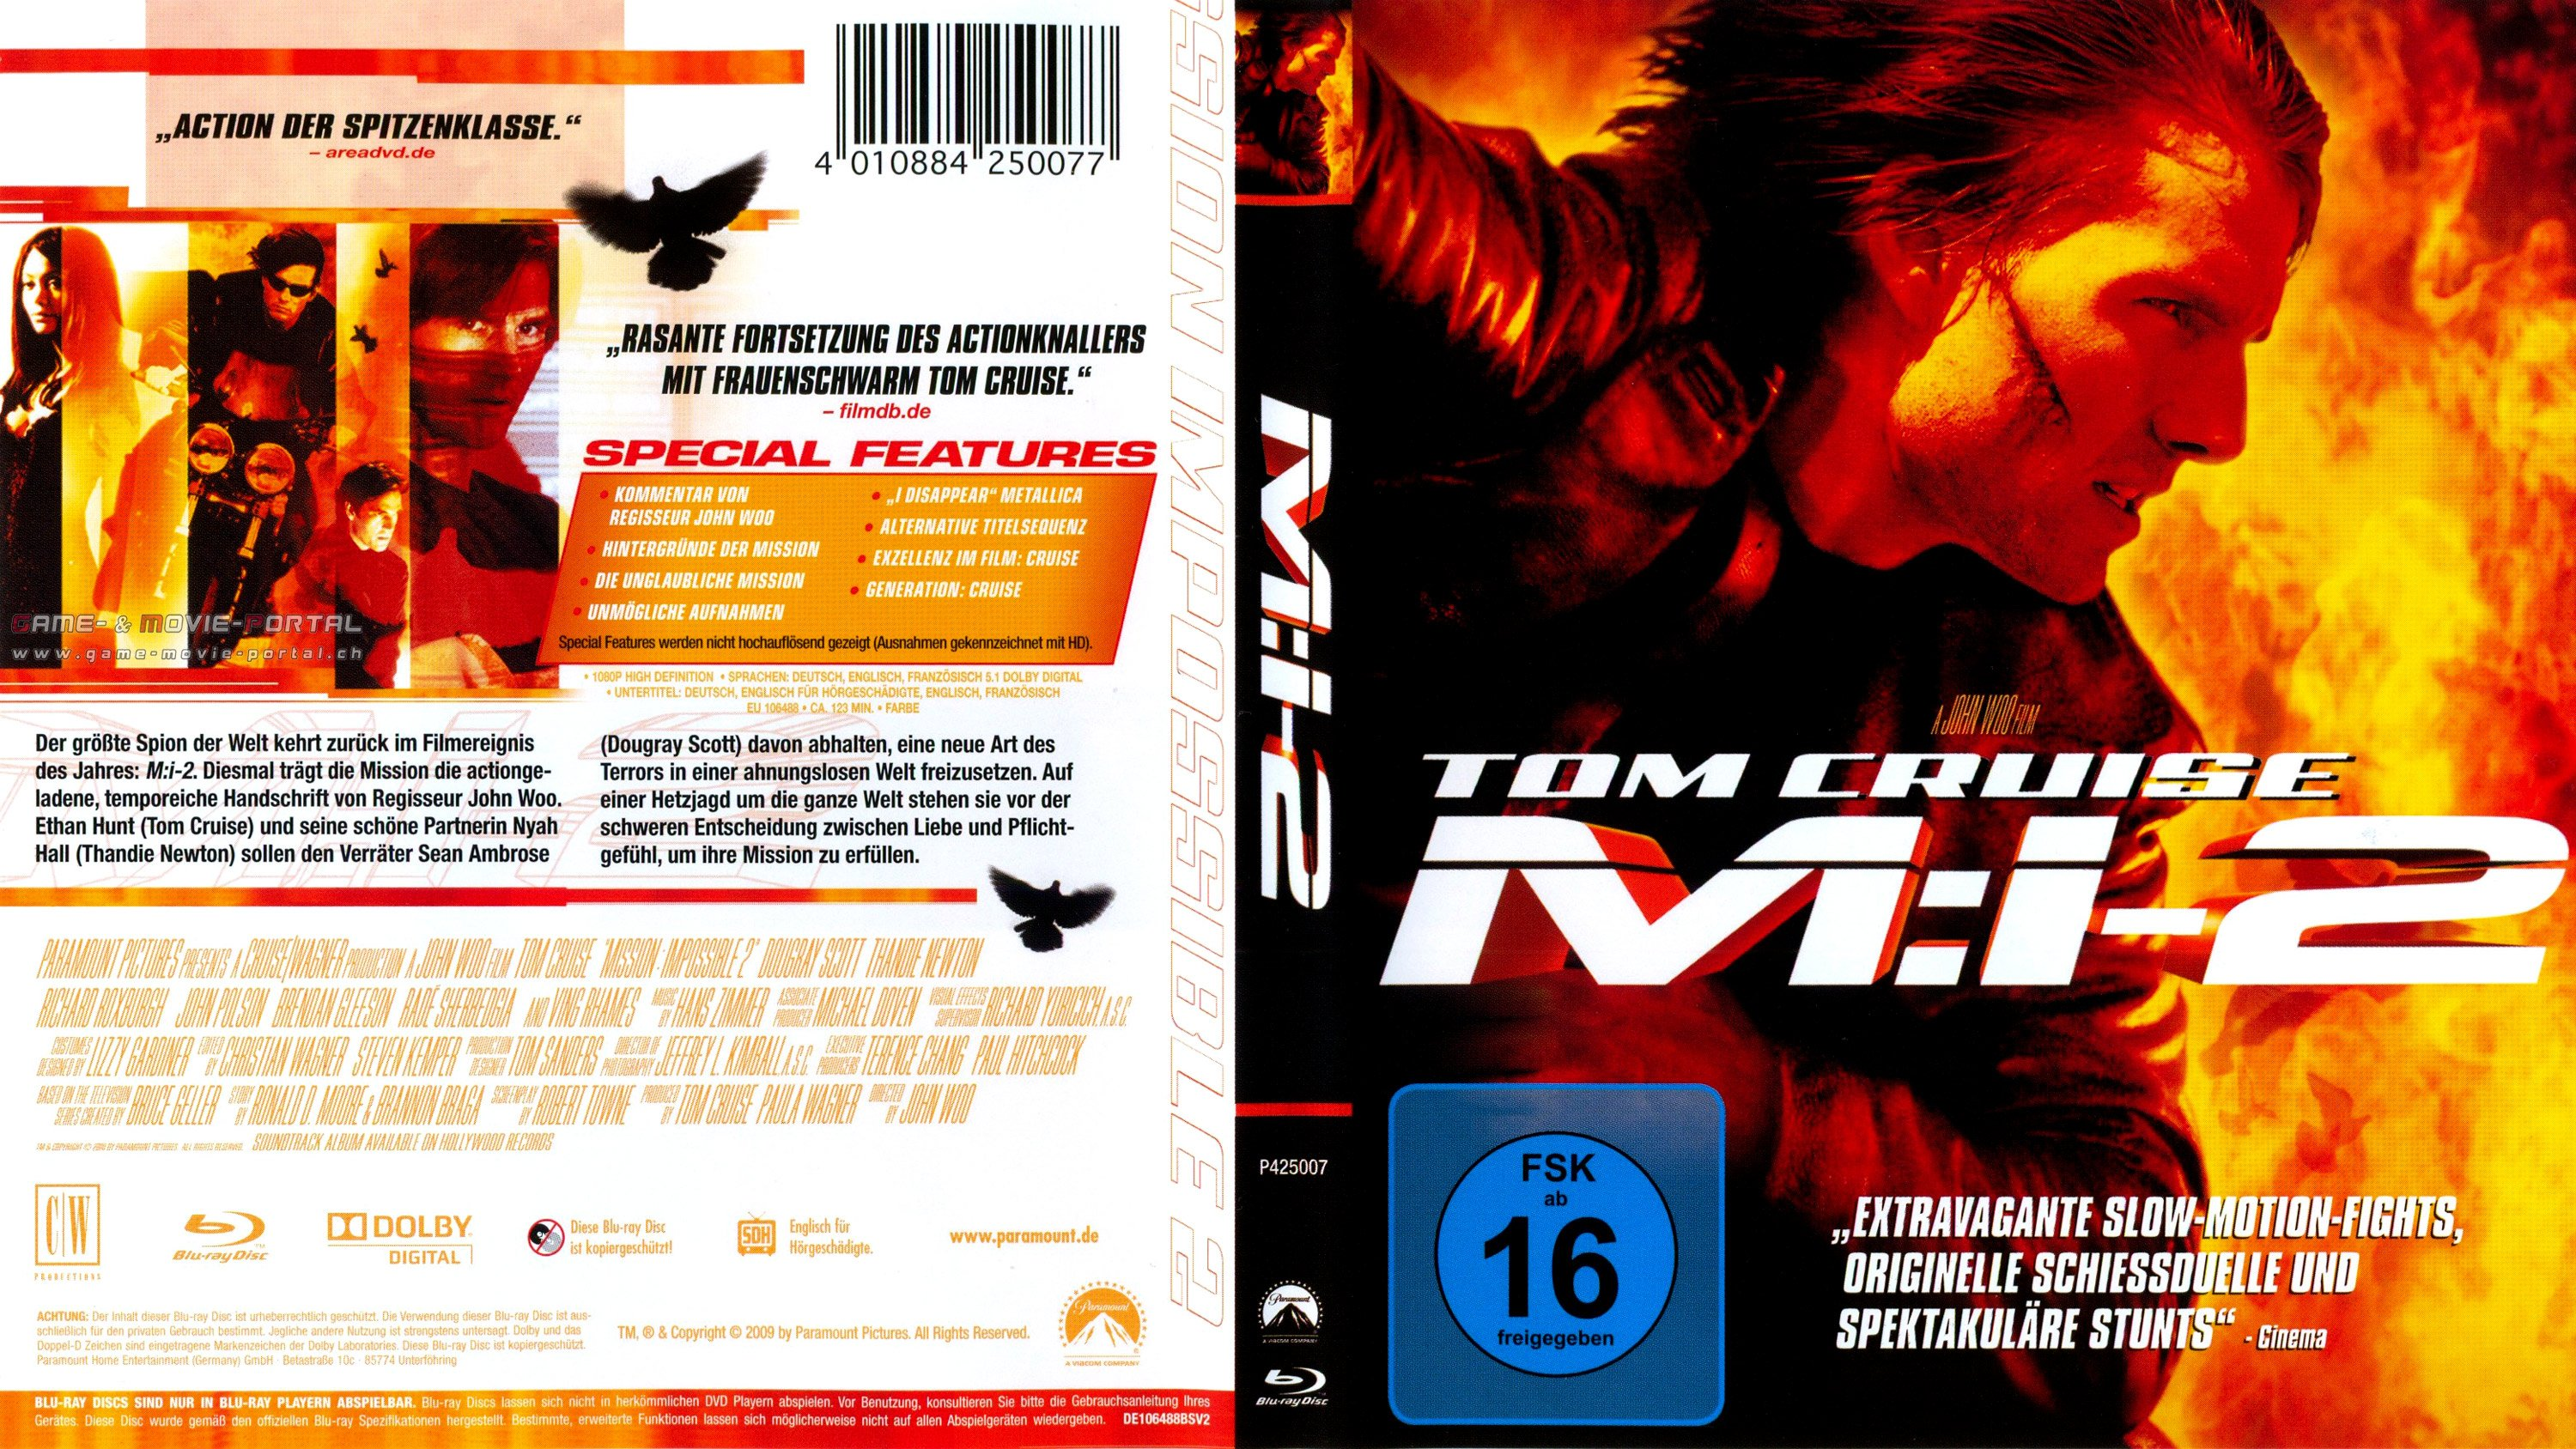 Bildergebnis für www.dvd-covers.org mission impossible 1